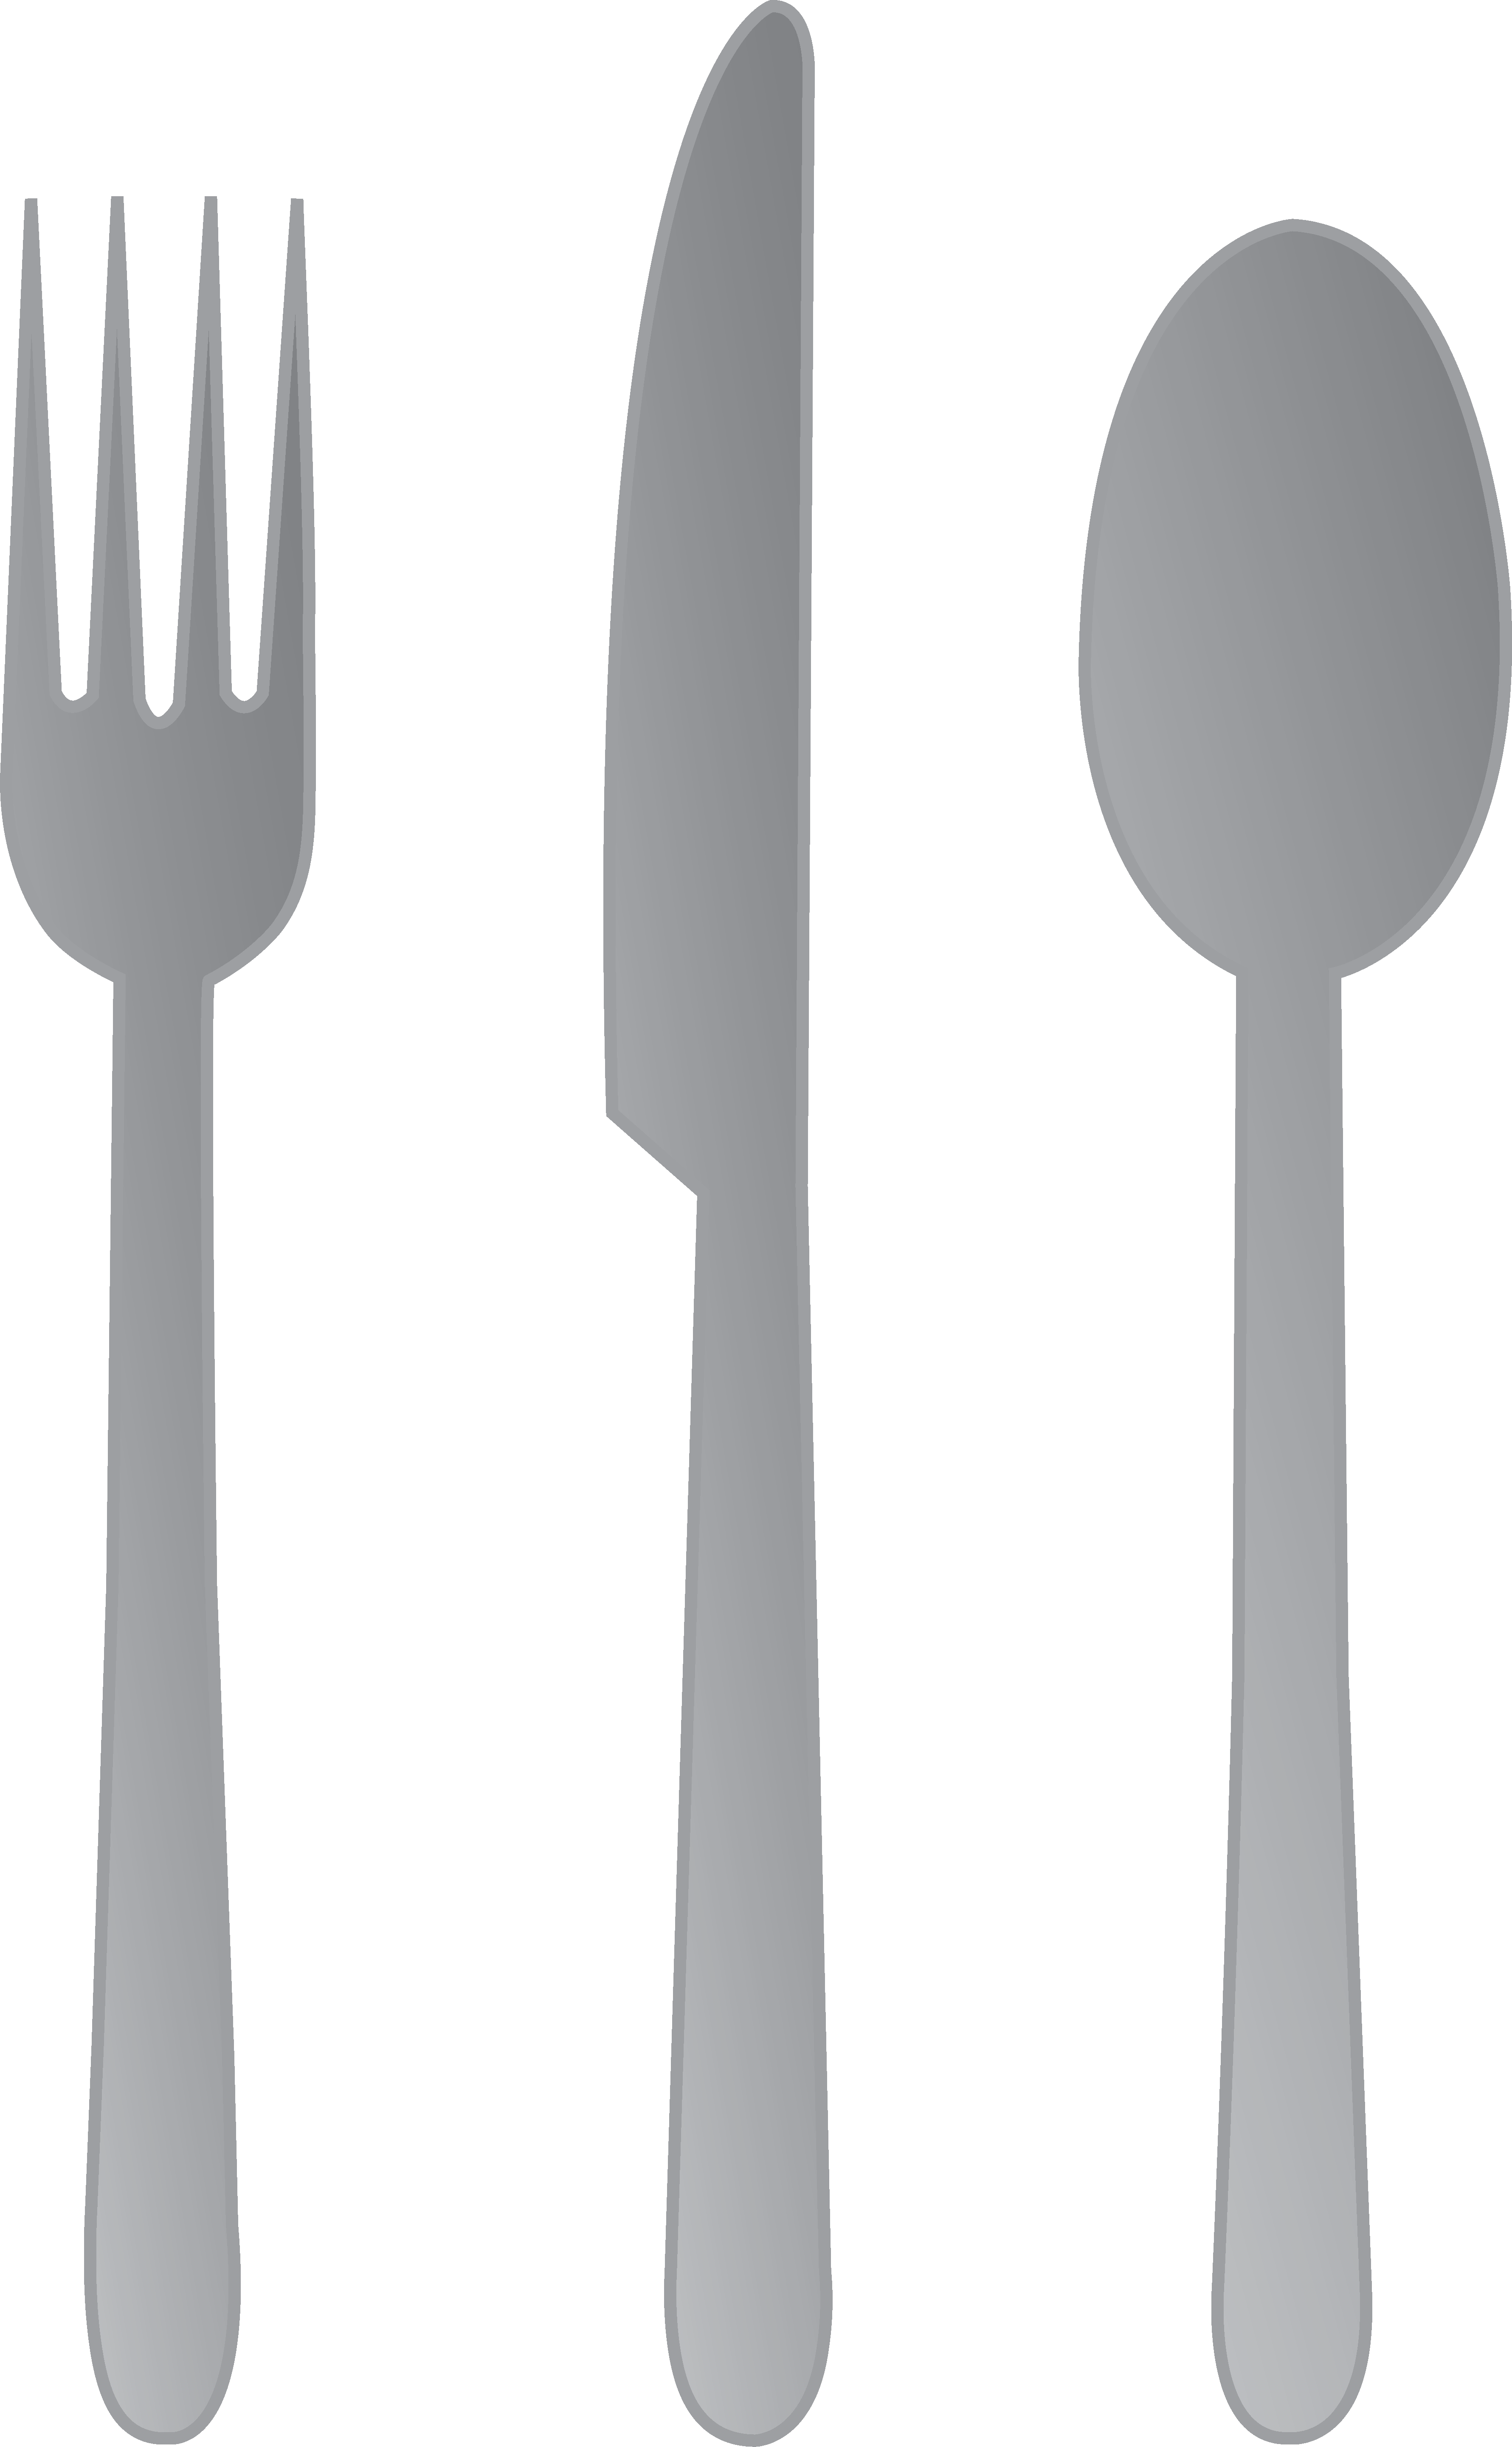 Forks And Spoons Png Fabulous Knives Forks   image #3676